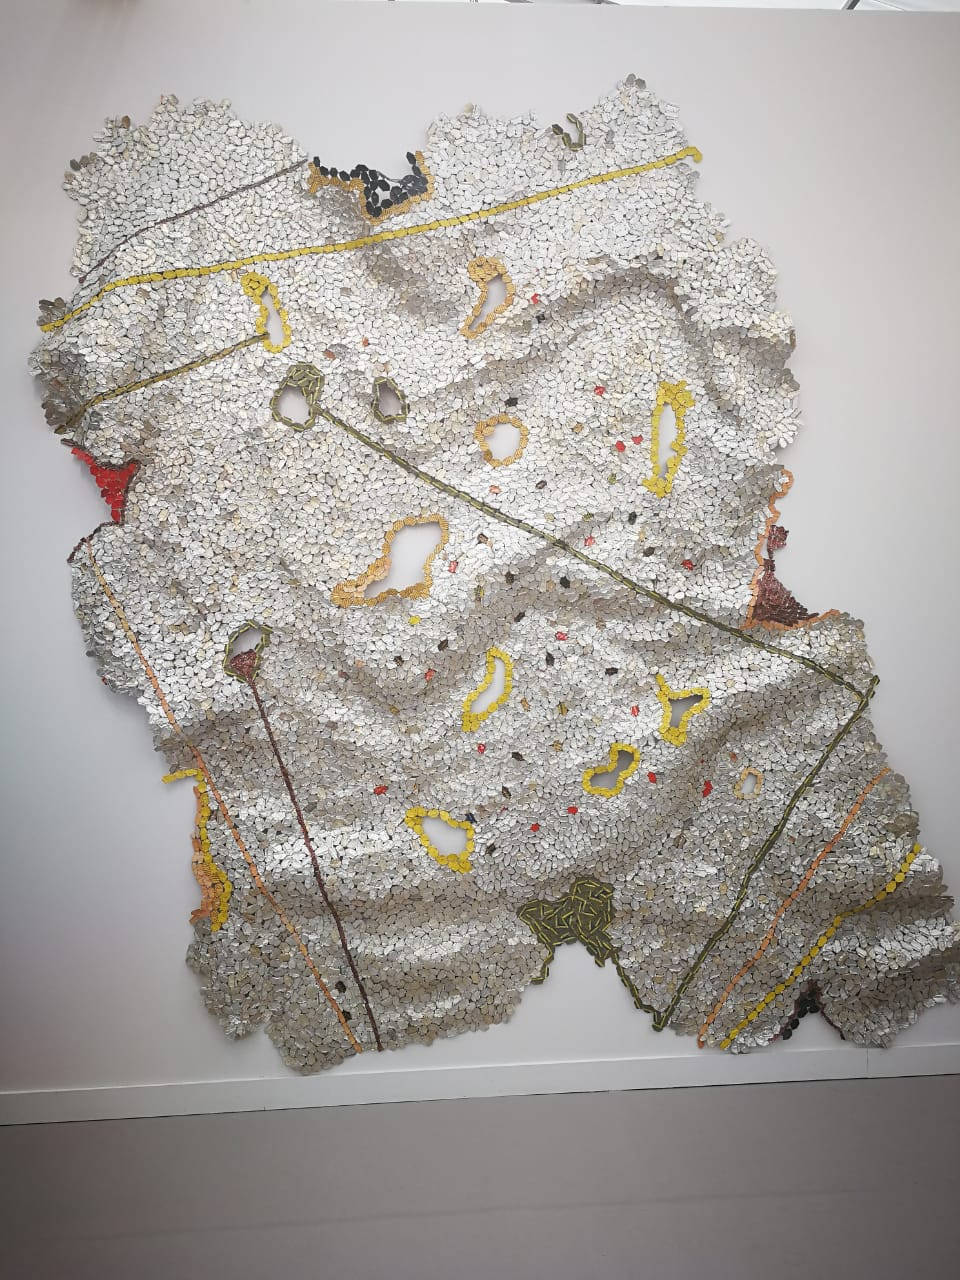 El Anatsui's artwork at Jack Shainman Gallery